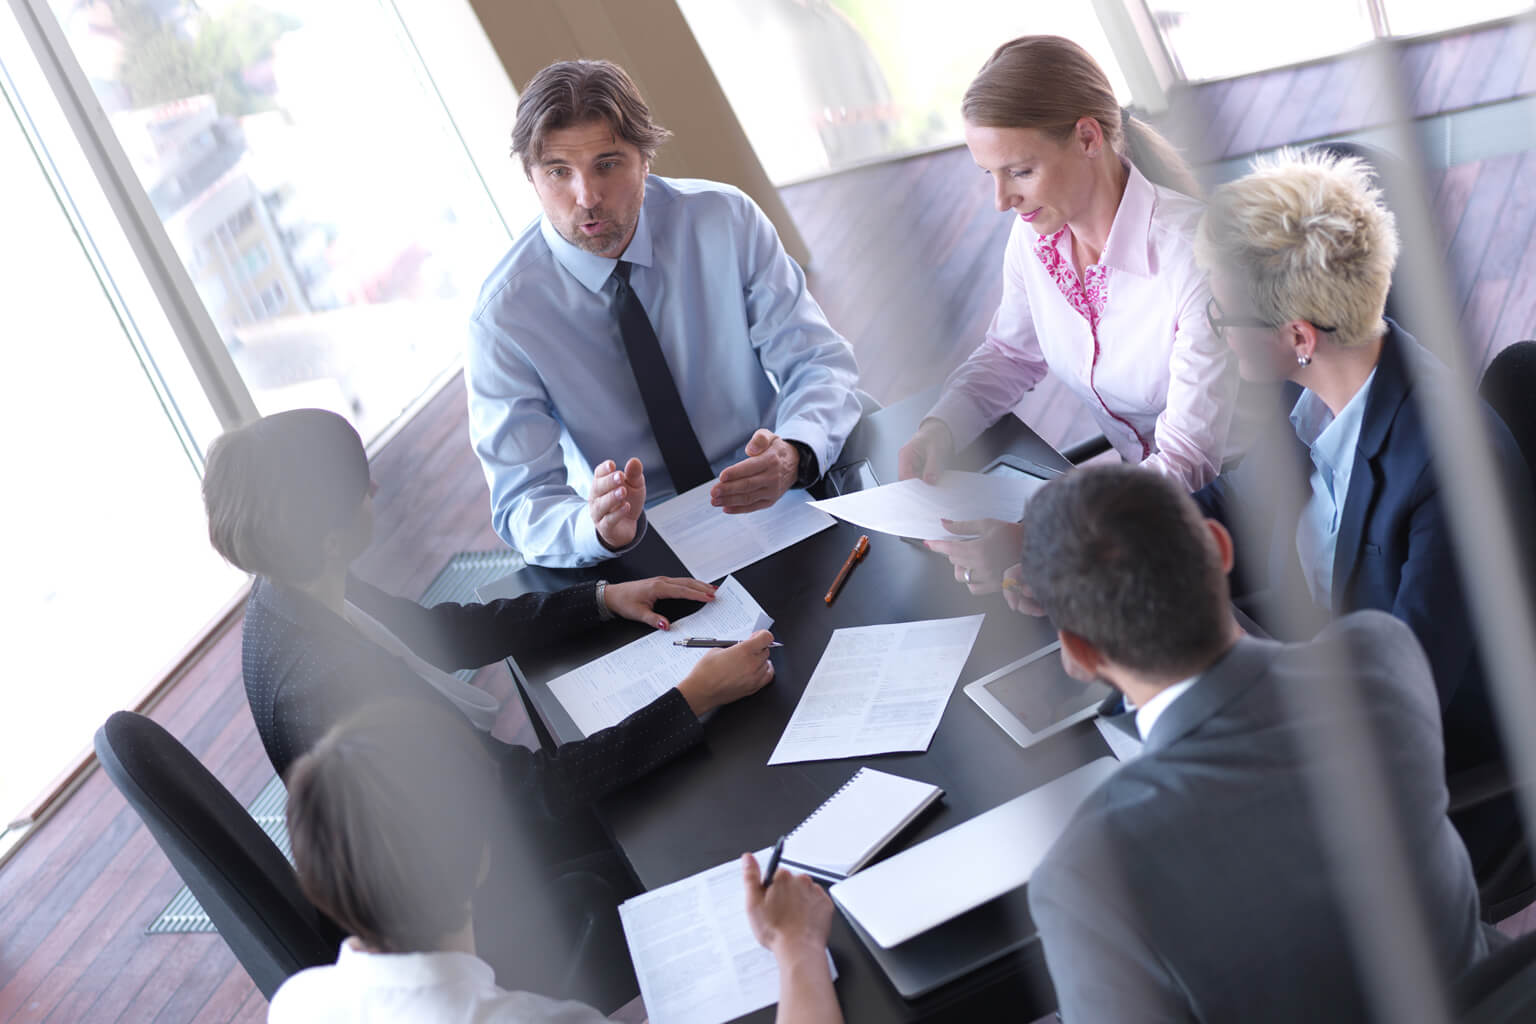 Group of people discussing business